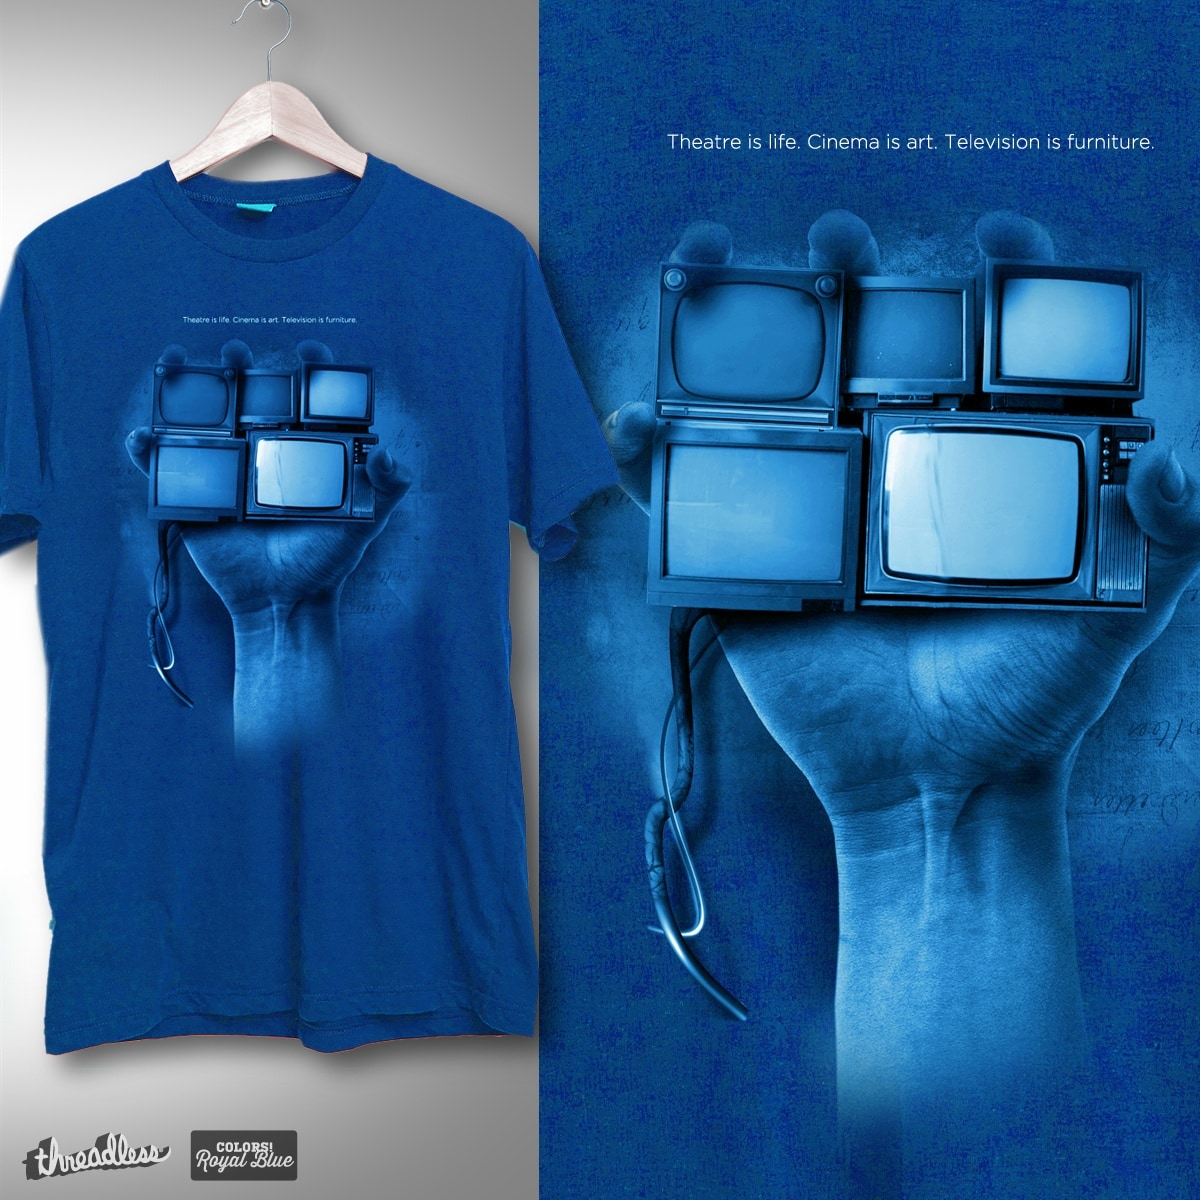 Theatre is life. Cinema is art. Television is furniture. by fattyacid on Threadless